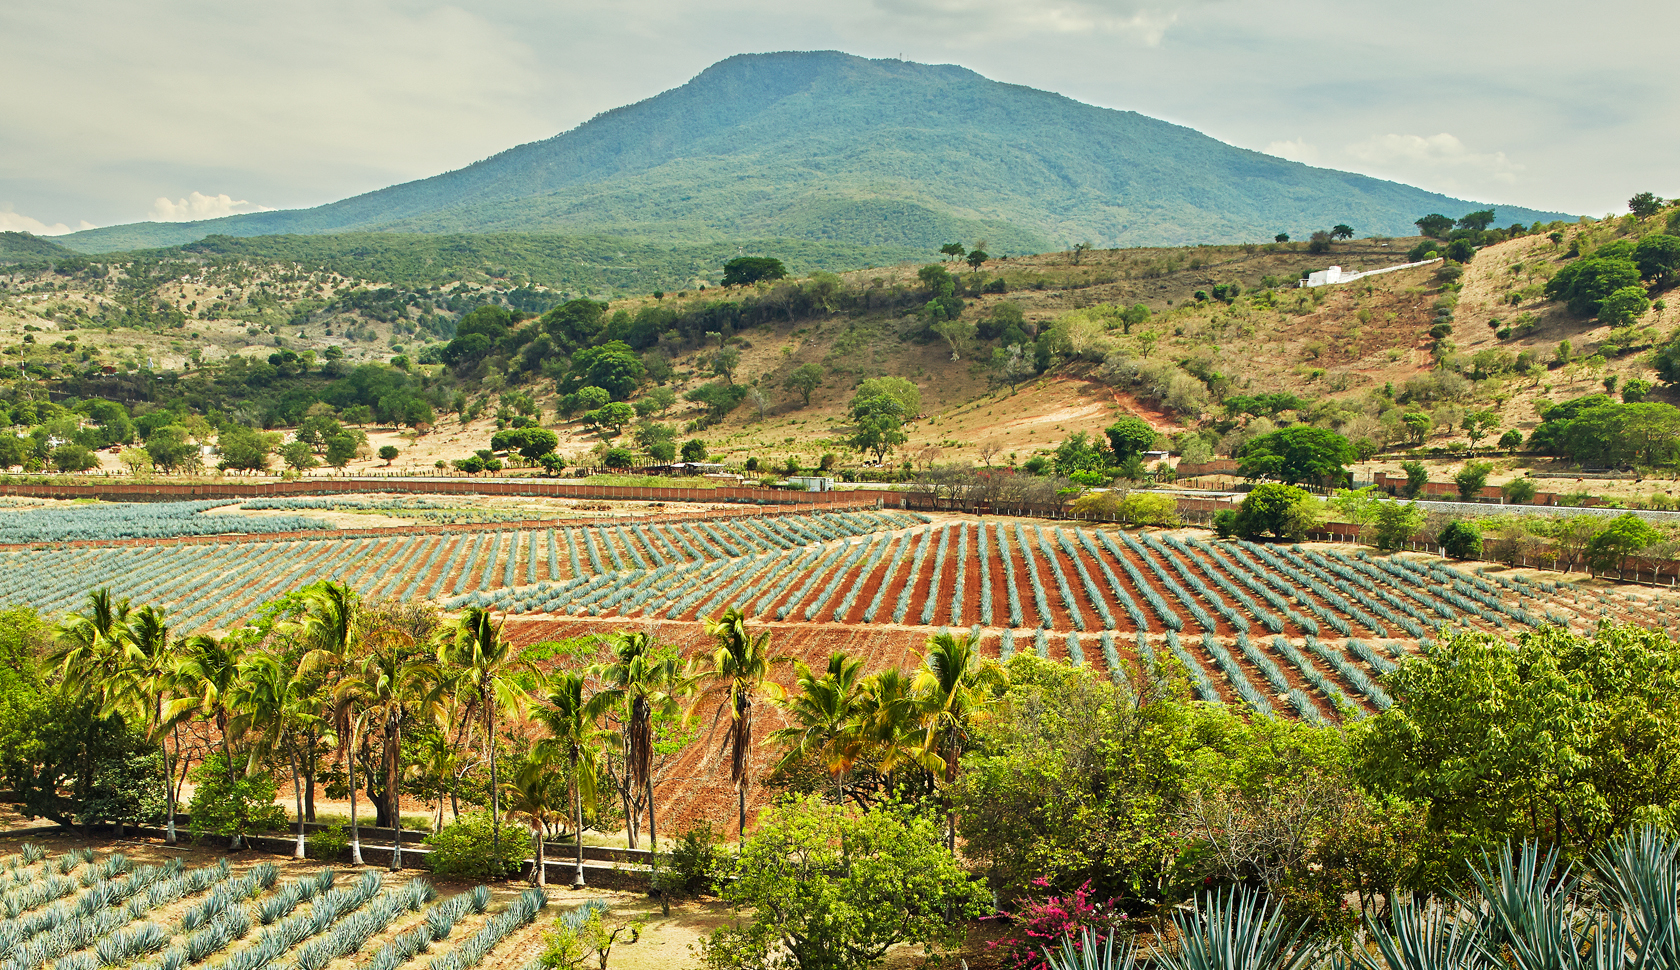 Fortaleza makes its spirits the old way, here the fields in Tequila, Mexico, where its agave is grown.